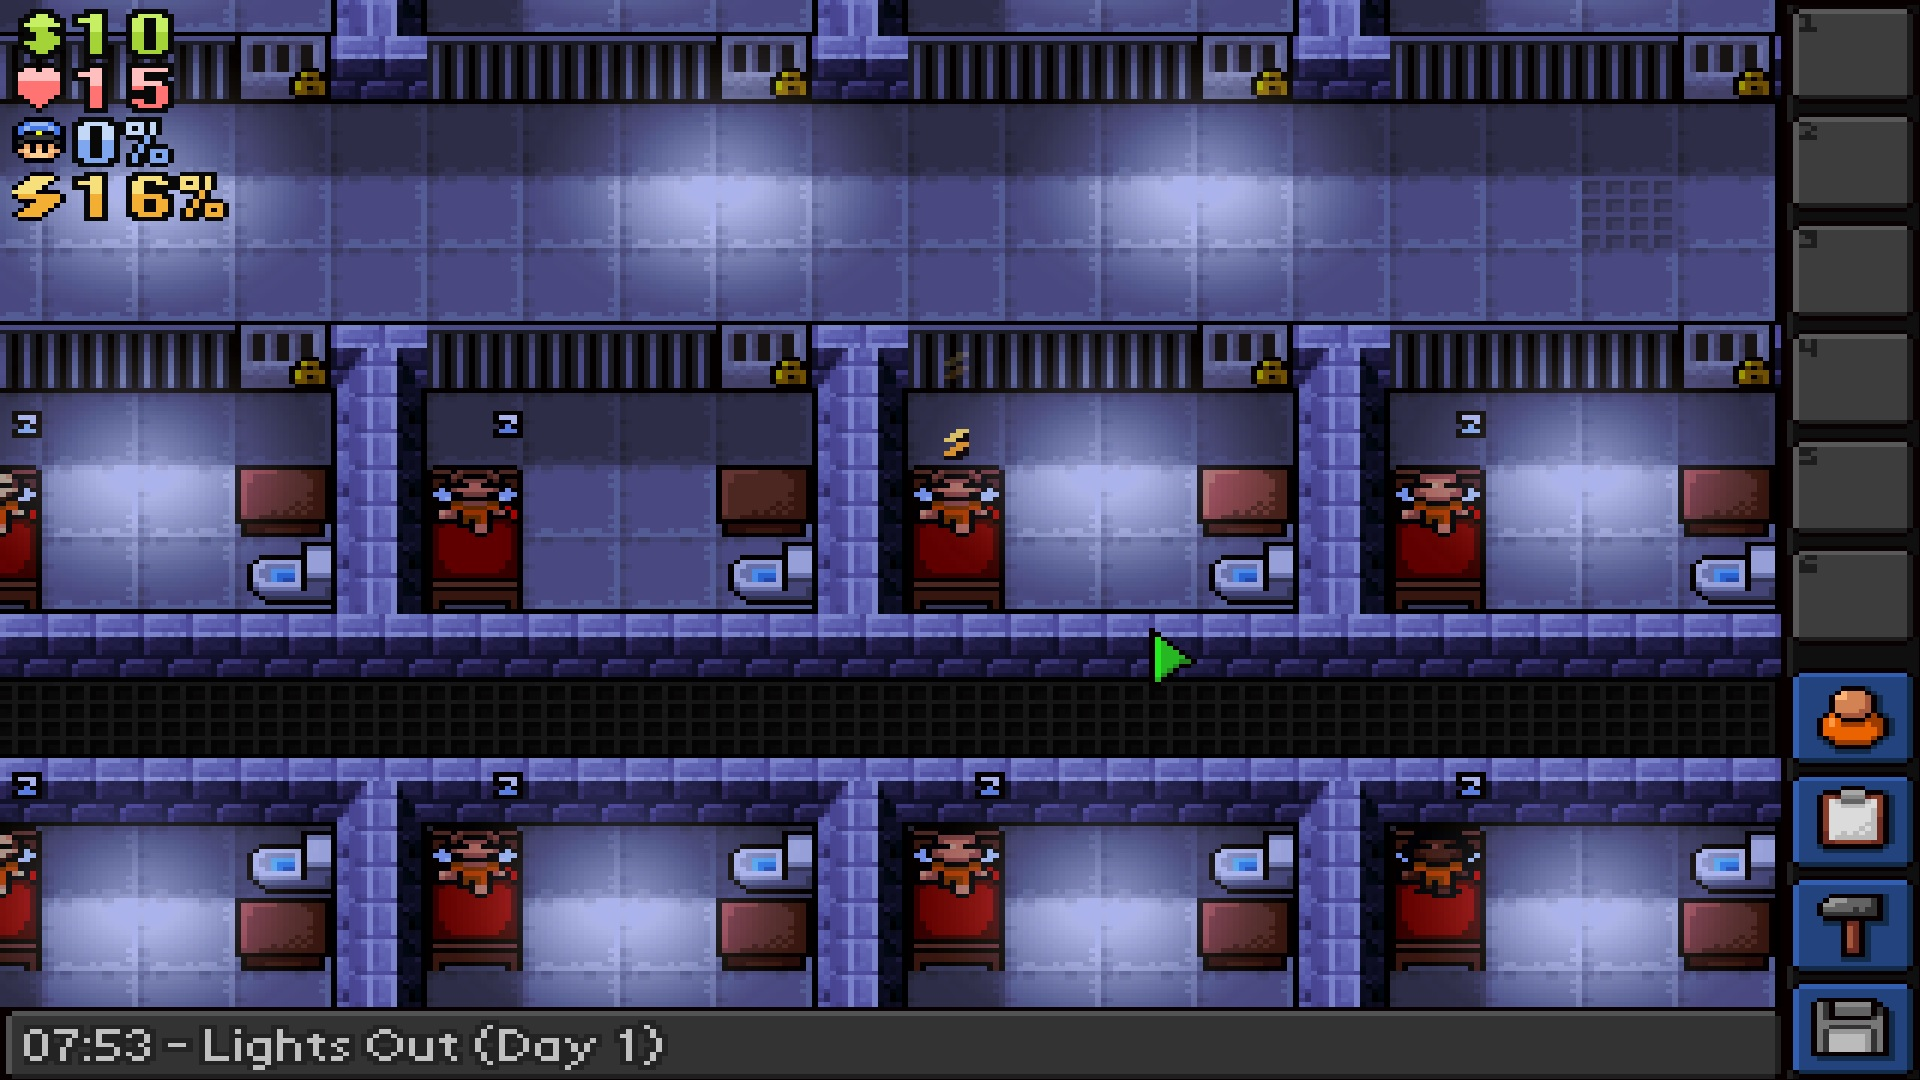 The Escapists - Fhurst Peak Correctional Facility [Online Game Code] by Team17 (Image #2)